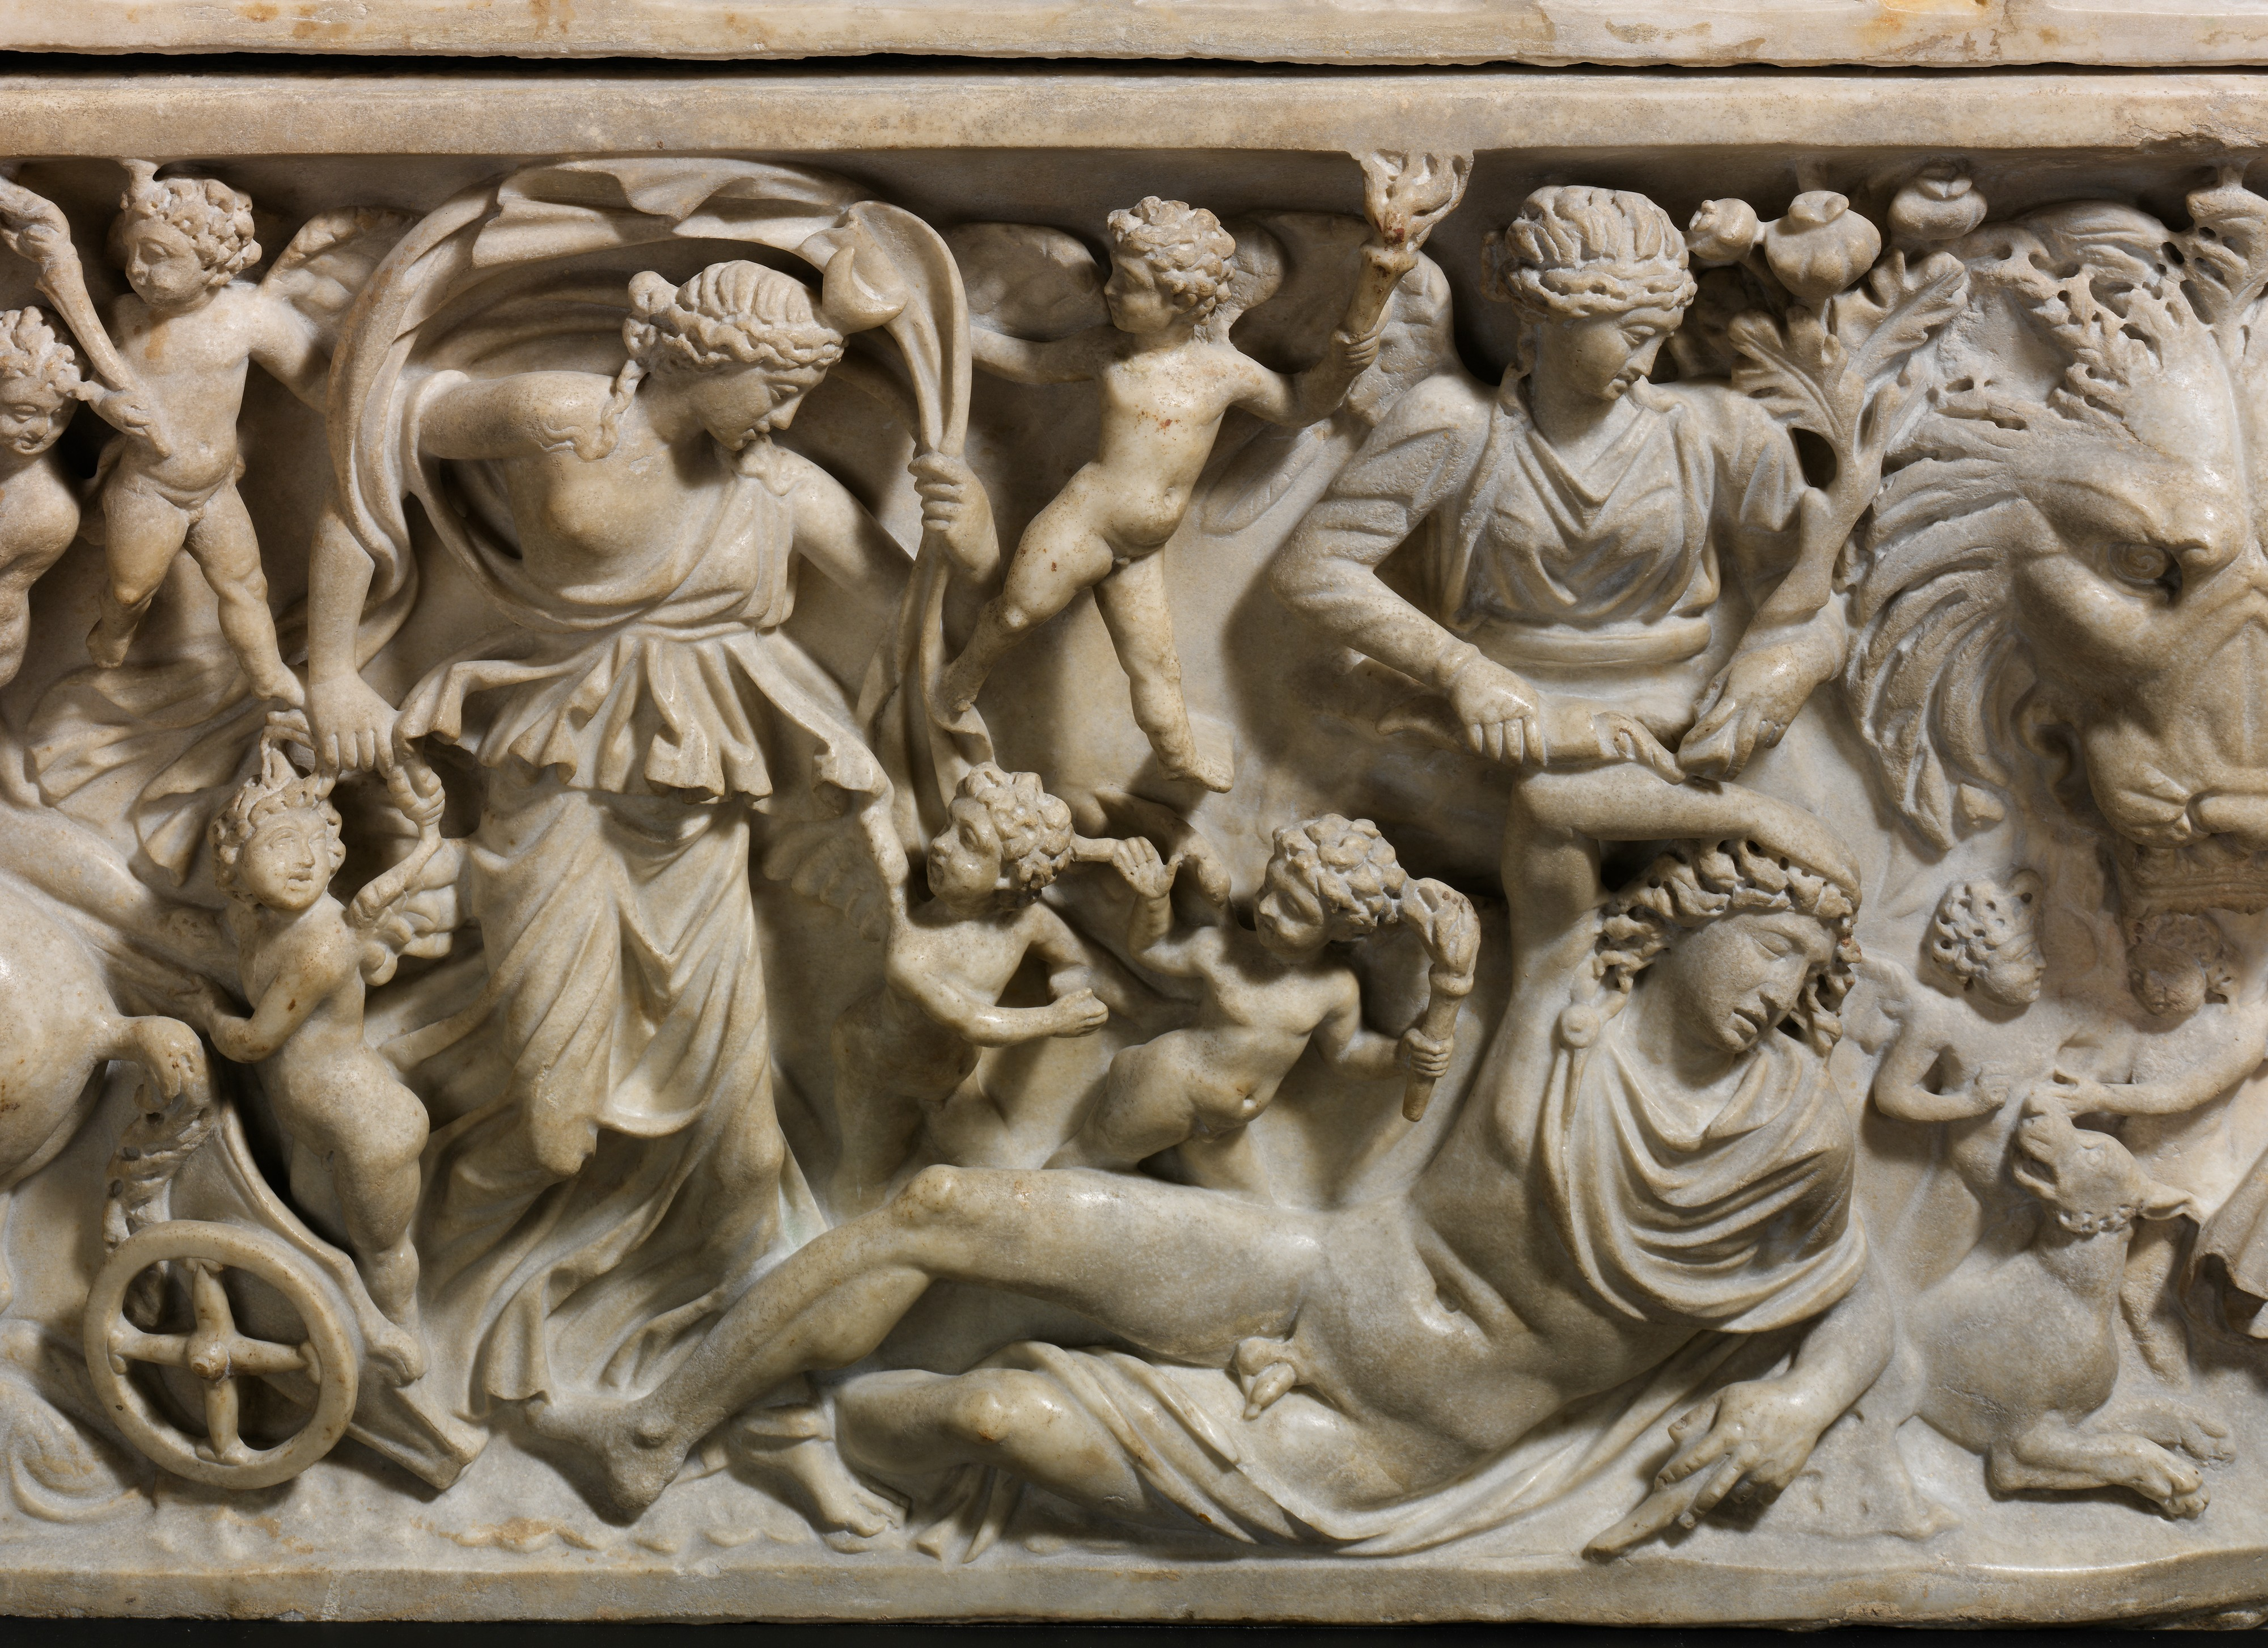 3rd cen CE Roman sarcophagus showing the myth of Selene and Endymion: note the lady pouring the potion of immortality on the sleeping youth, holding a bunch of poppies